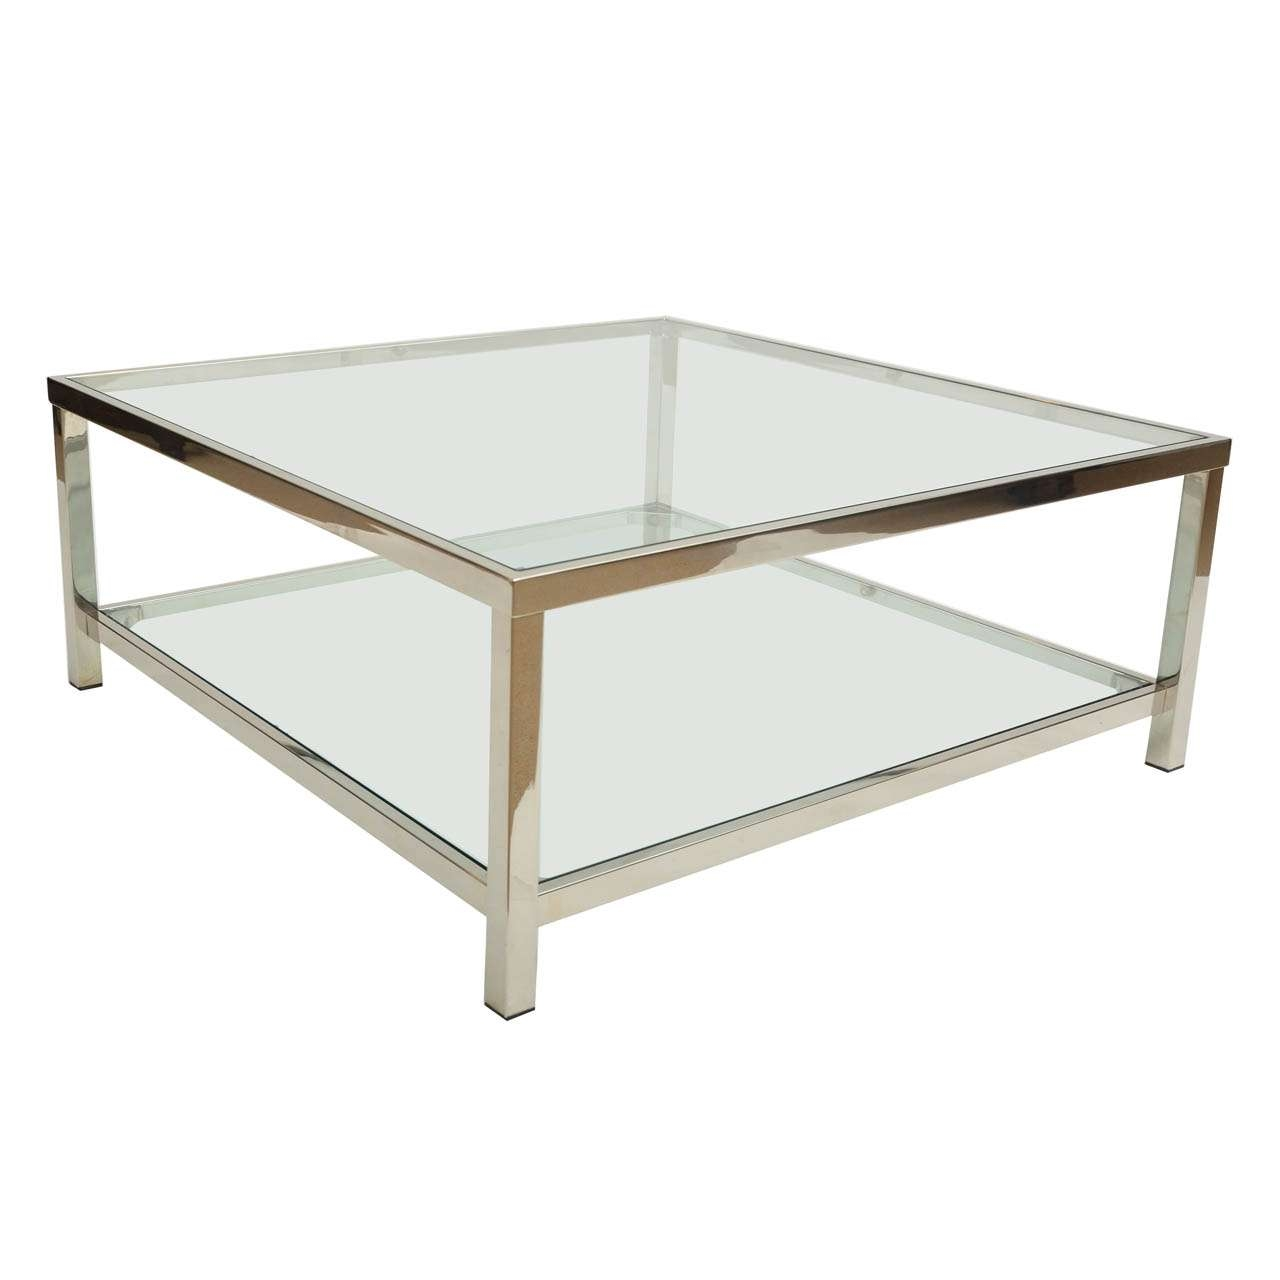 Widely Used Glass Square Coffee Tables Within All You Need To Know About Glass And Chrome Coffee Tables (View 4 of 20)